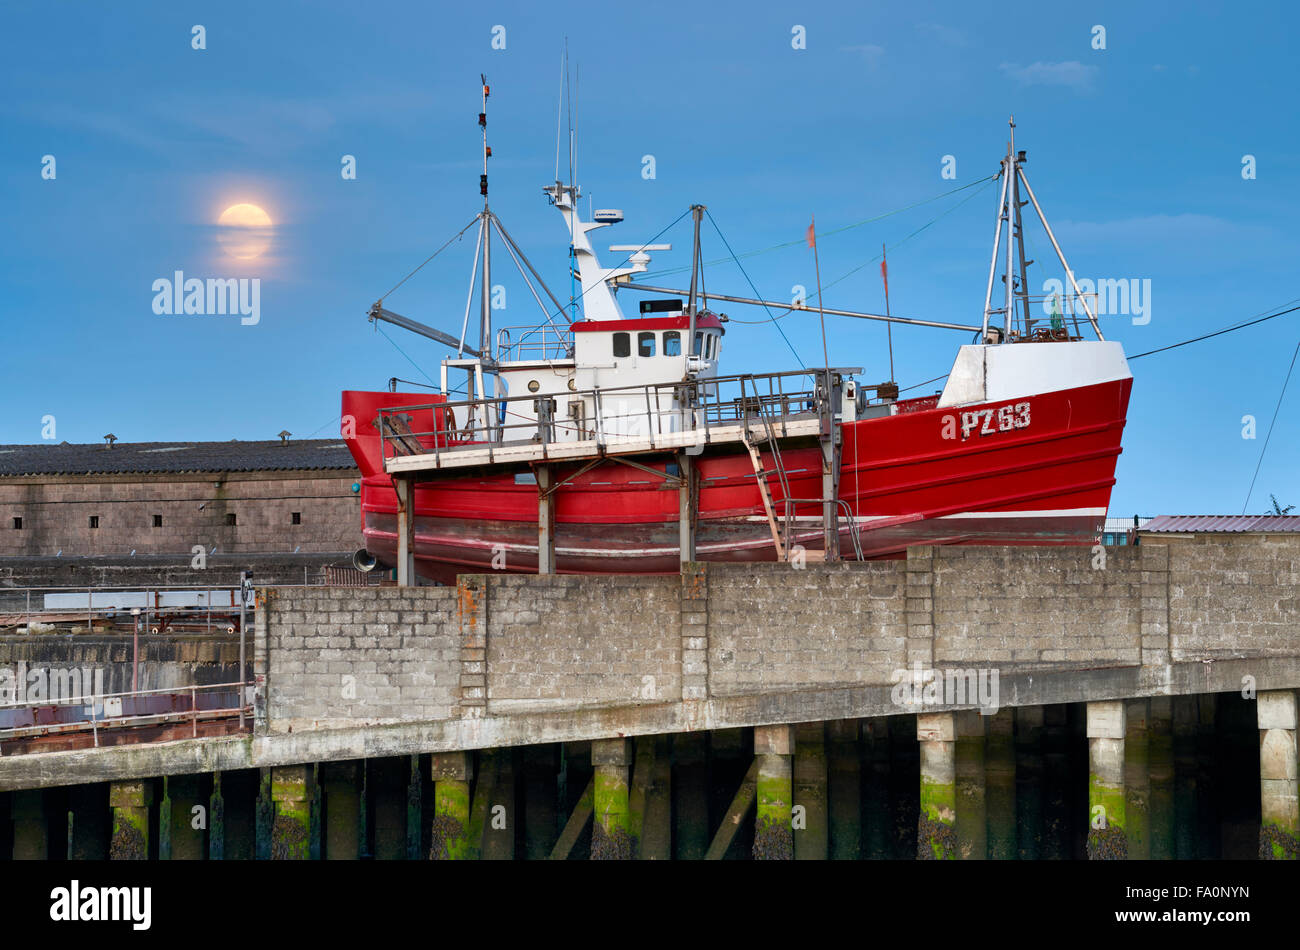 Fishing boat having routine maintenance and a repaint, Newlyn - Stock Image